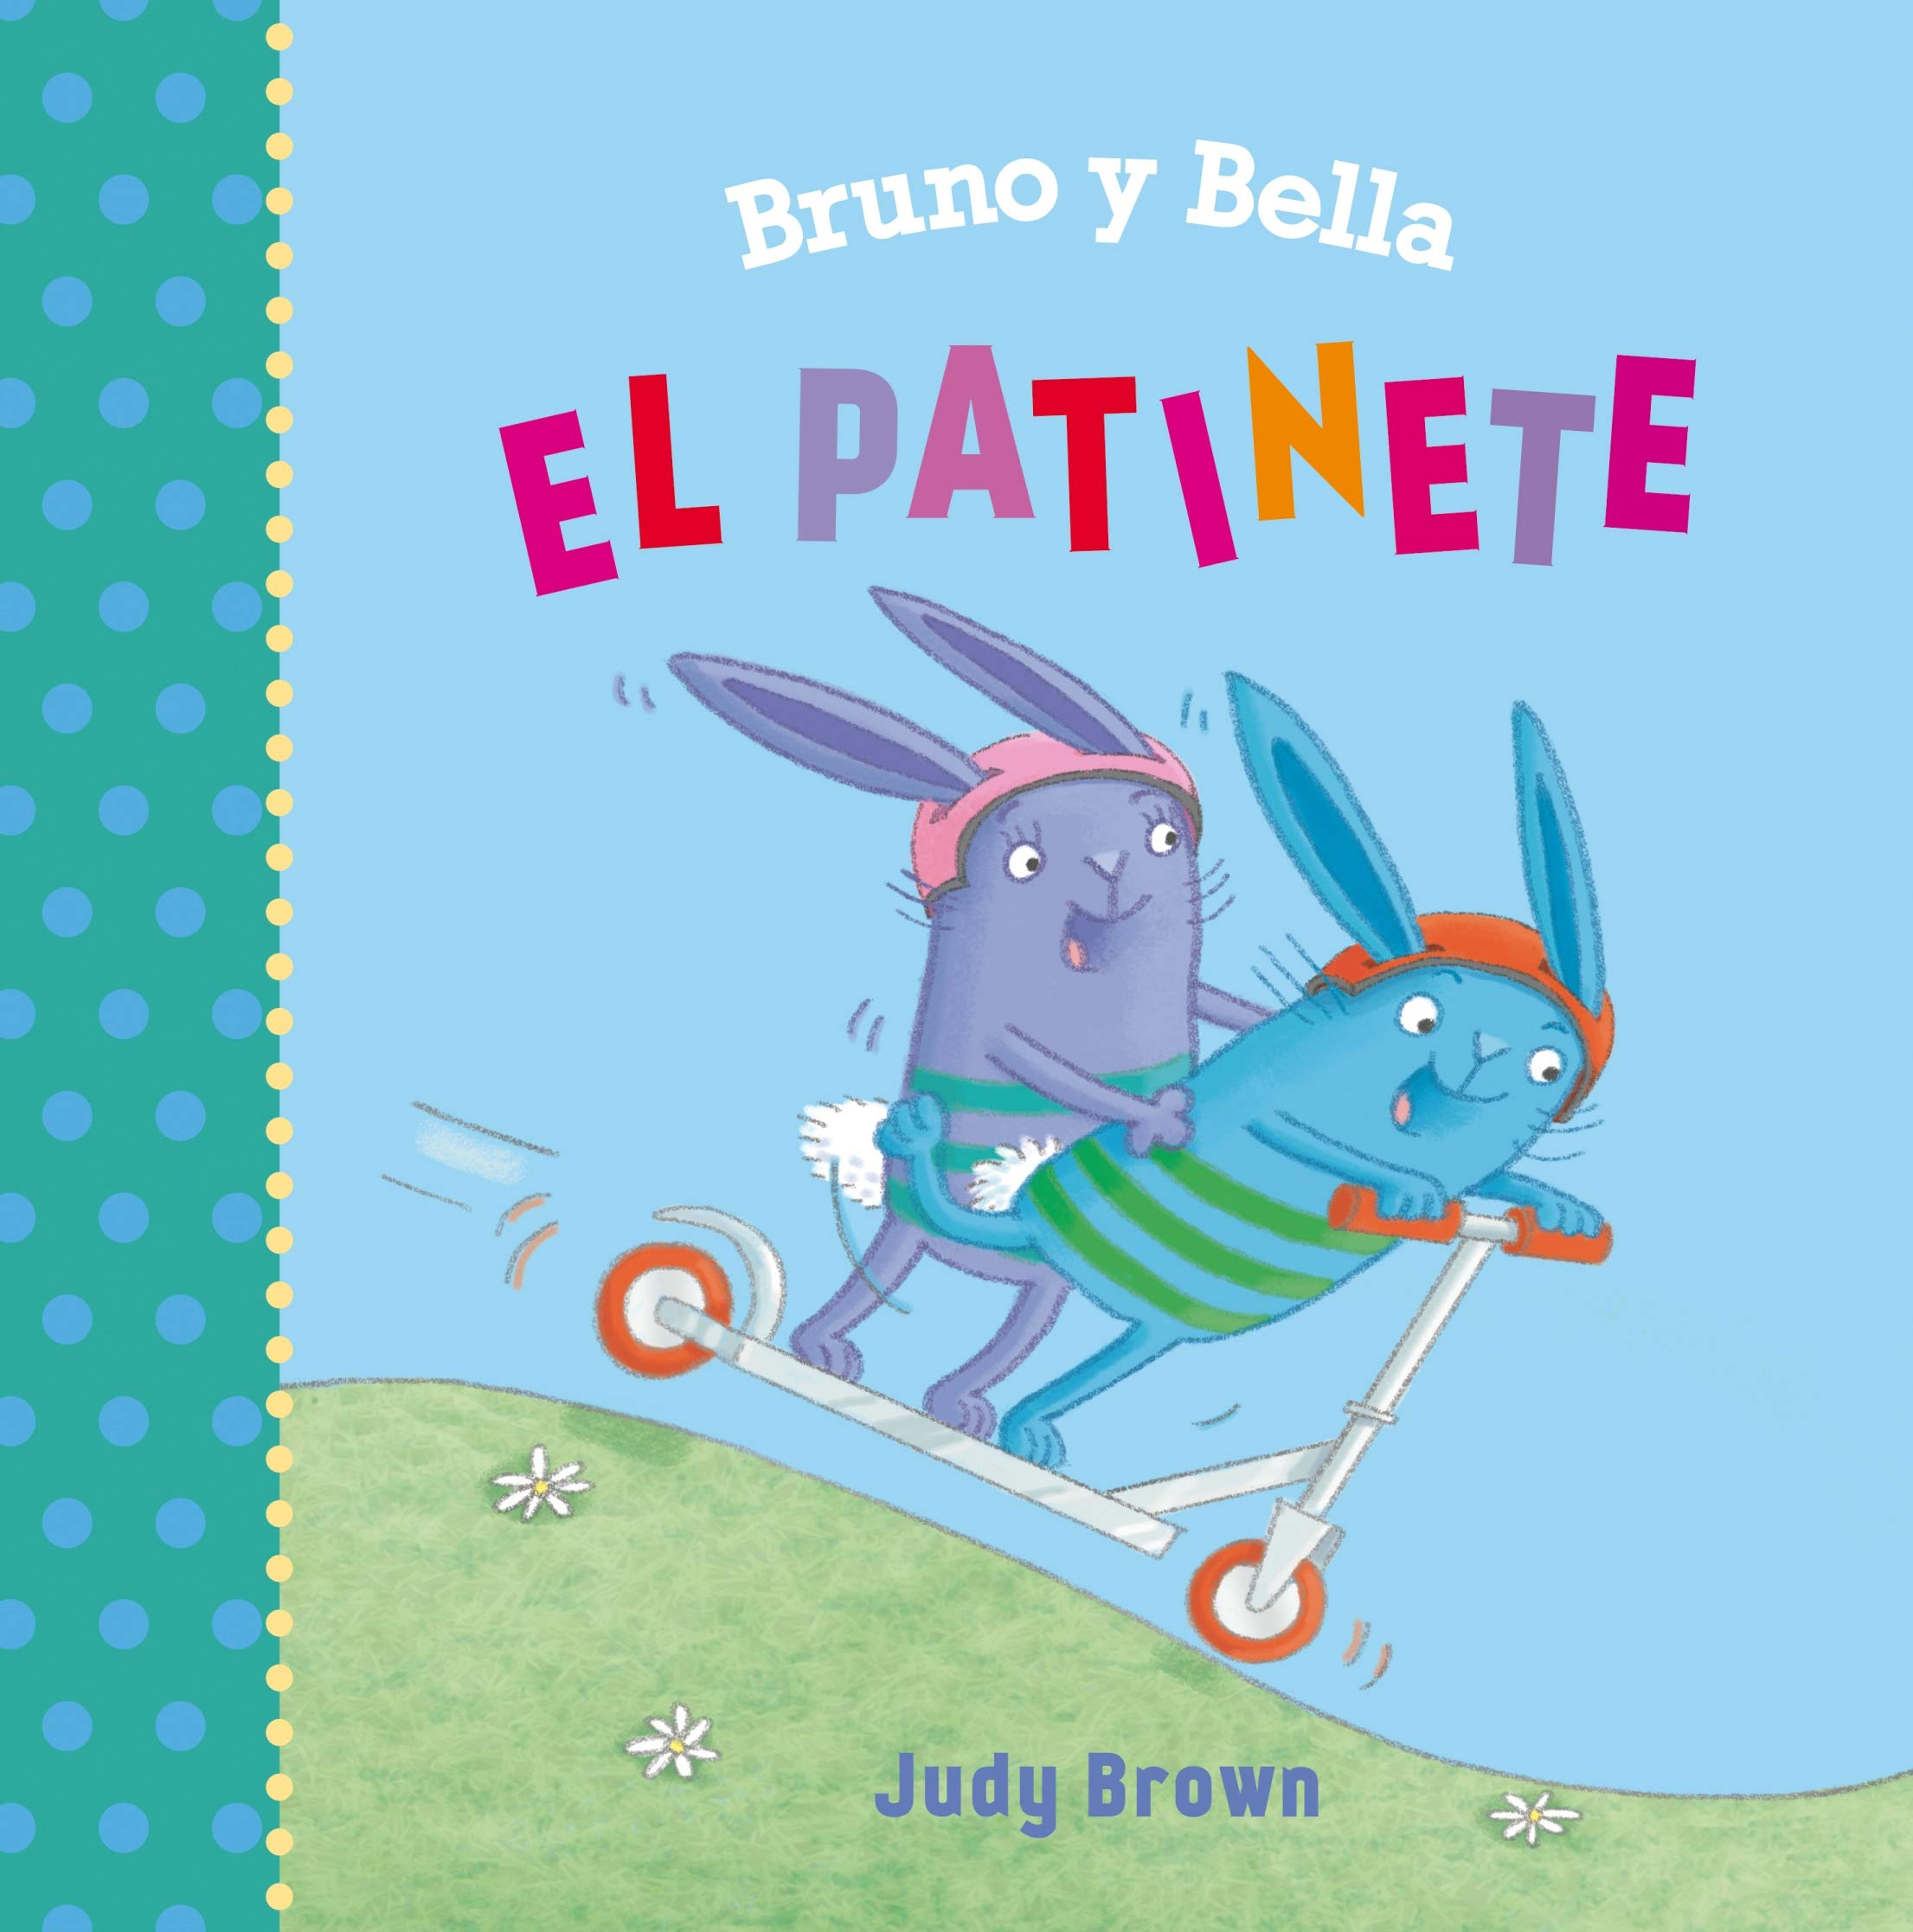 Bruno y Bella - El patinete (Bruno Y Bella / Bruno and Bella ...